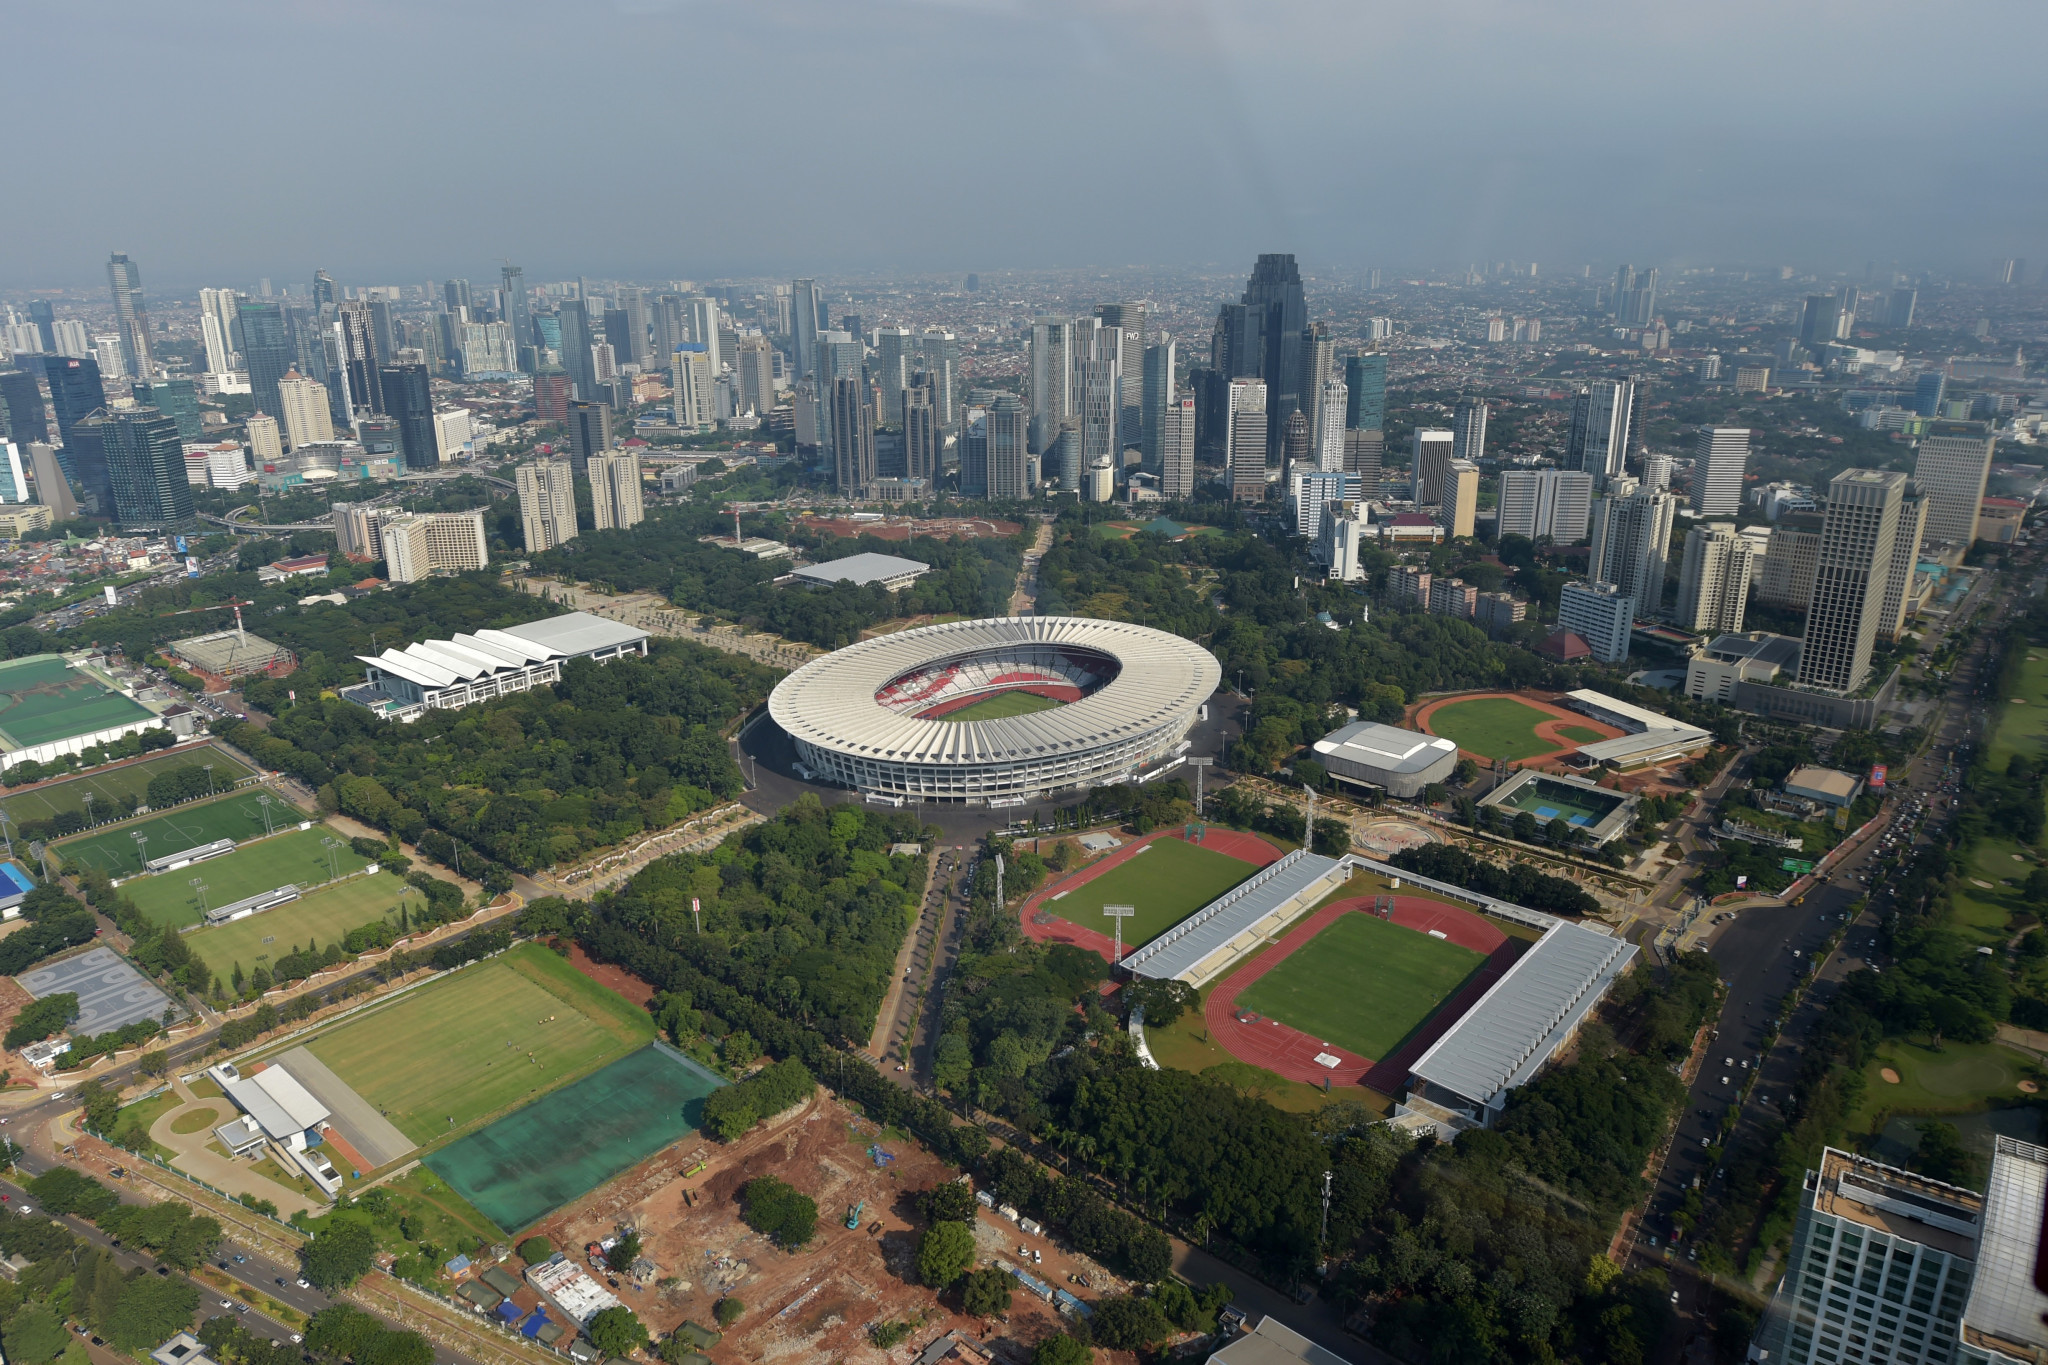 OCA praise preparations for Jakarta Palembang 2018 Asian Games with 100 days to go